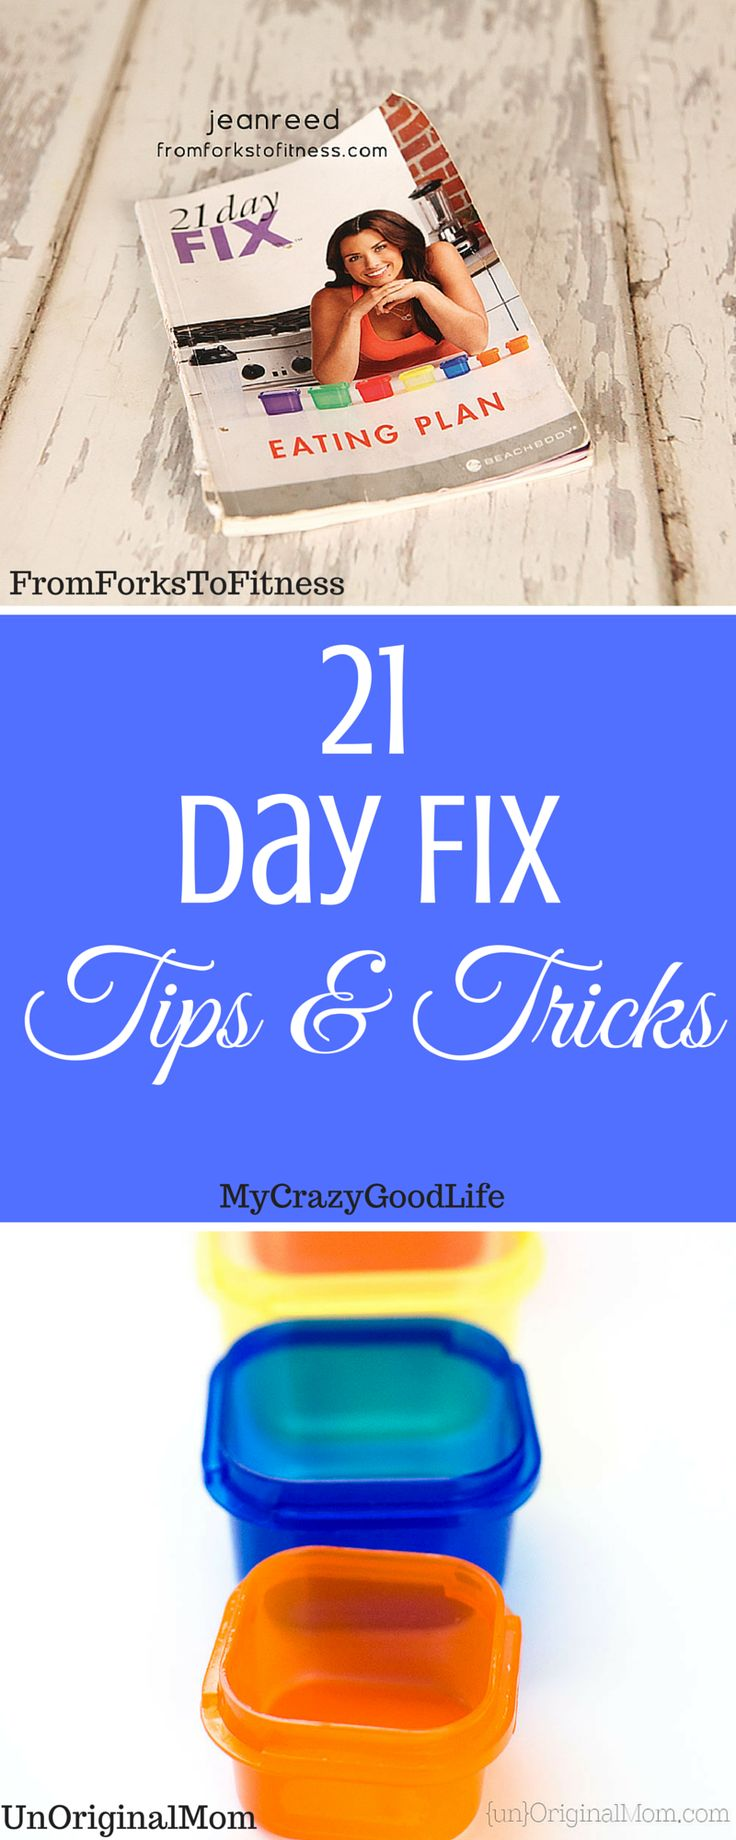 21 Day Fix Tips and Tricks | My Crazy Good Life | Bloglovin'